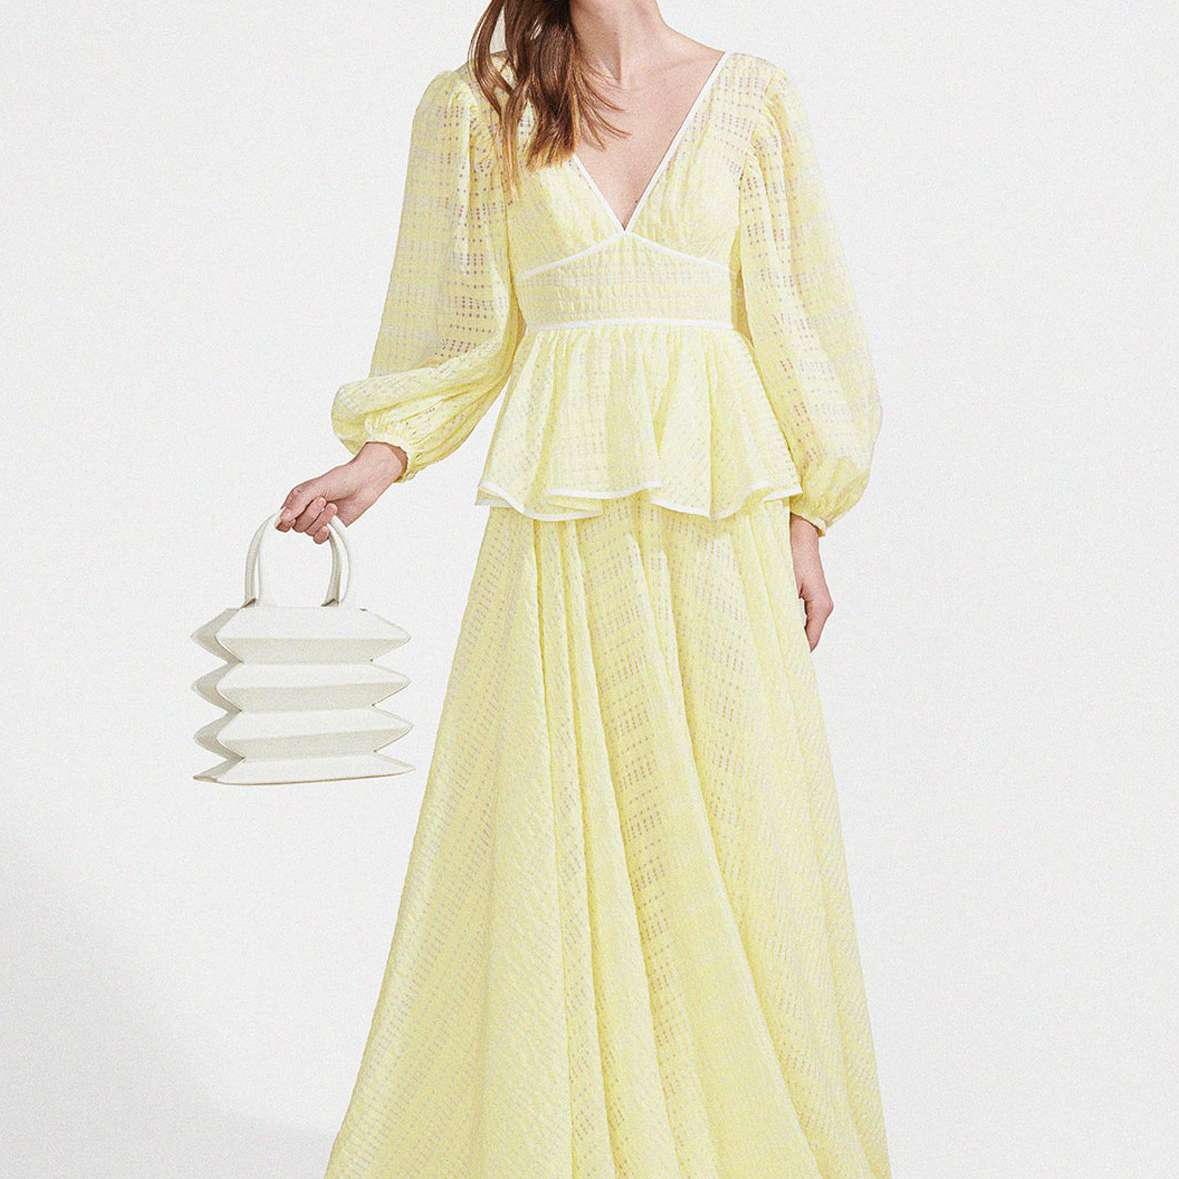 9d8acdd6650f6 26 Wedding Guest Dresses for Spring Weddings